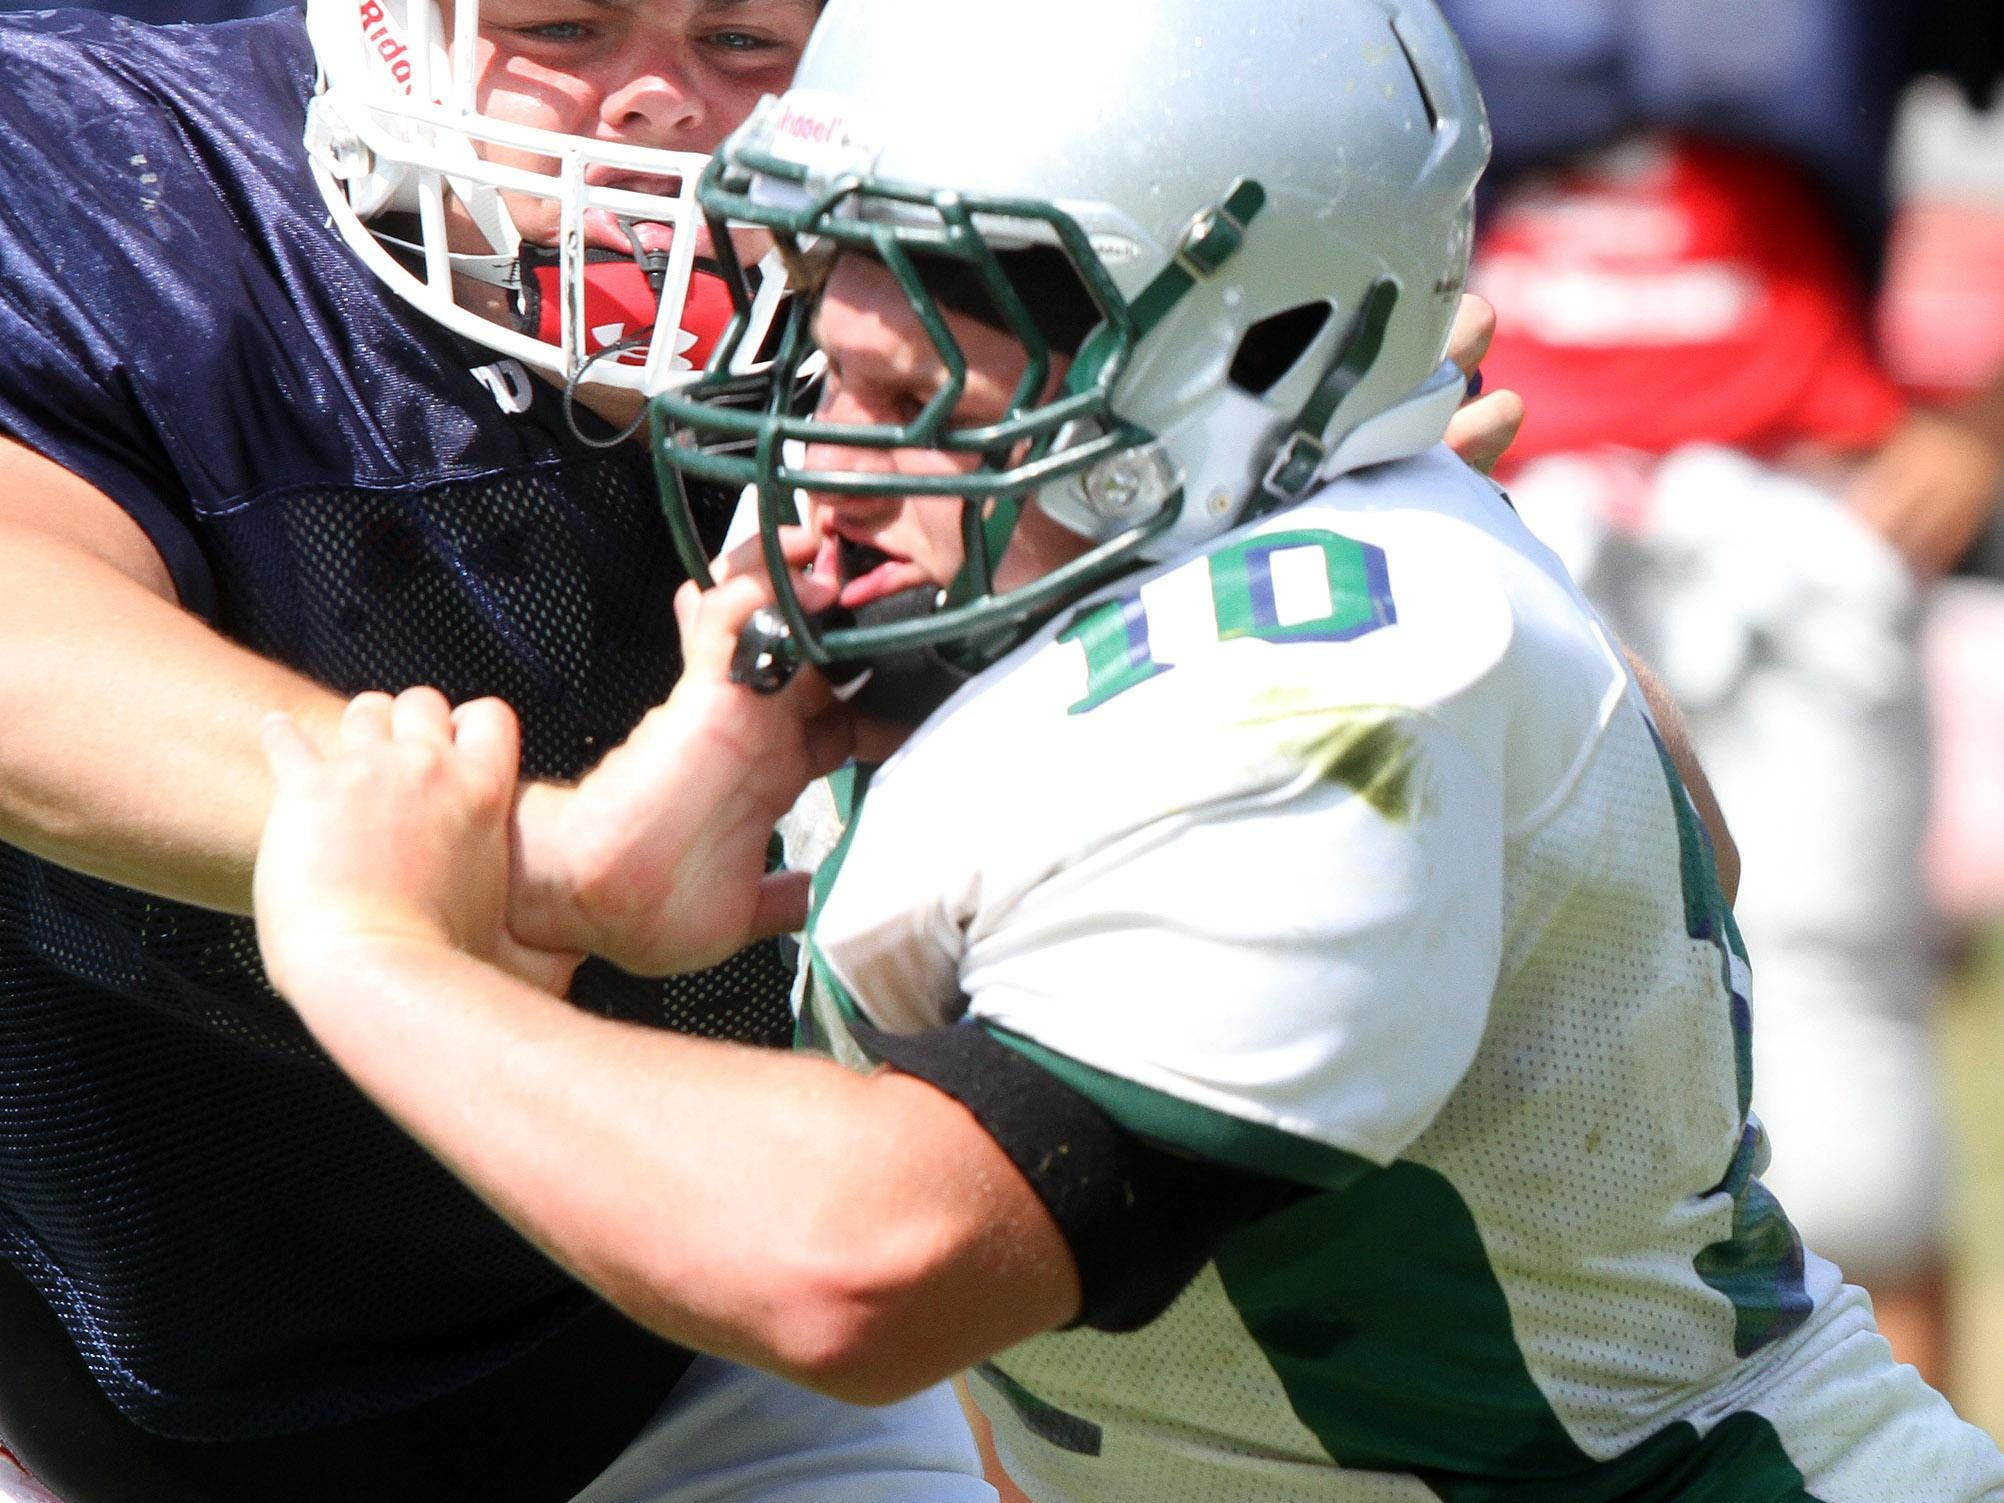 Manalapan offensive lineman Joe Sellmeyer (left) blocks Colts Neck's Joe Giacalone during a scrimmage Aug. 27.